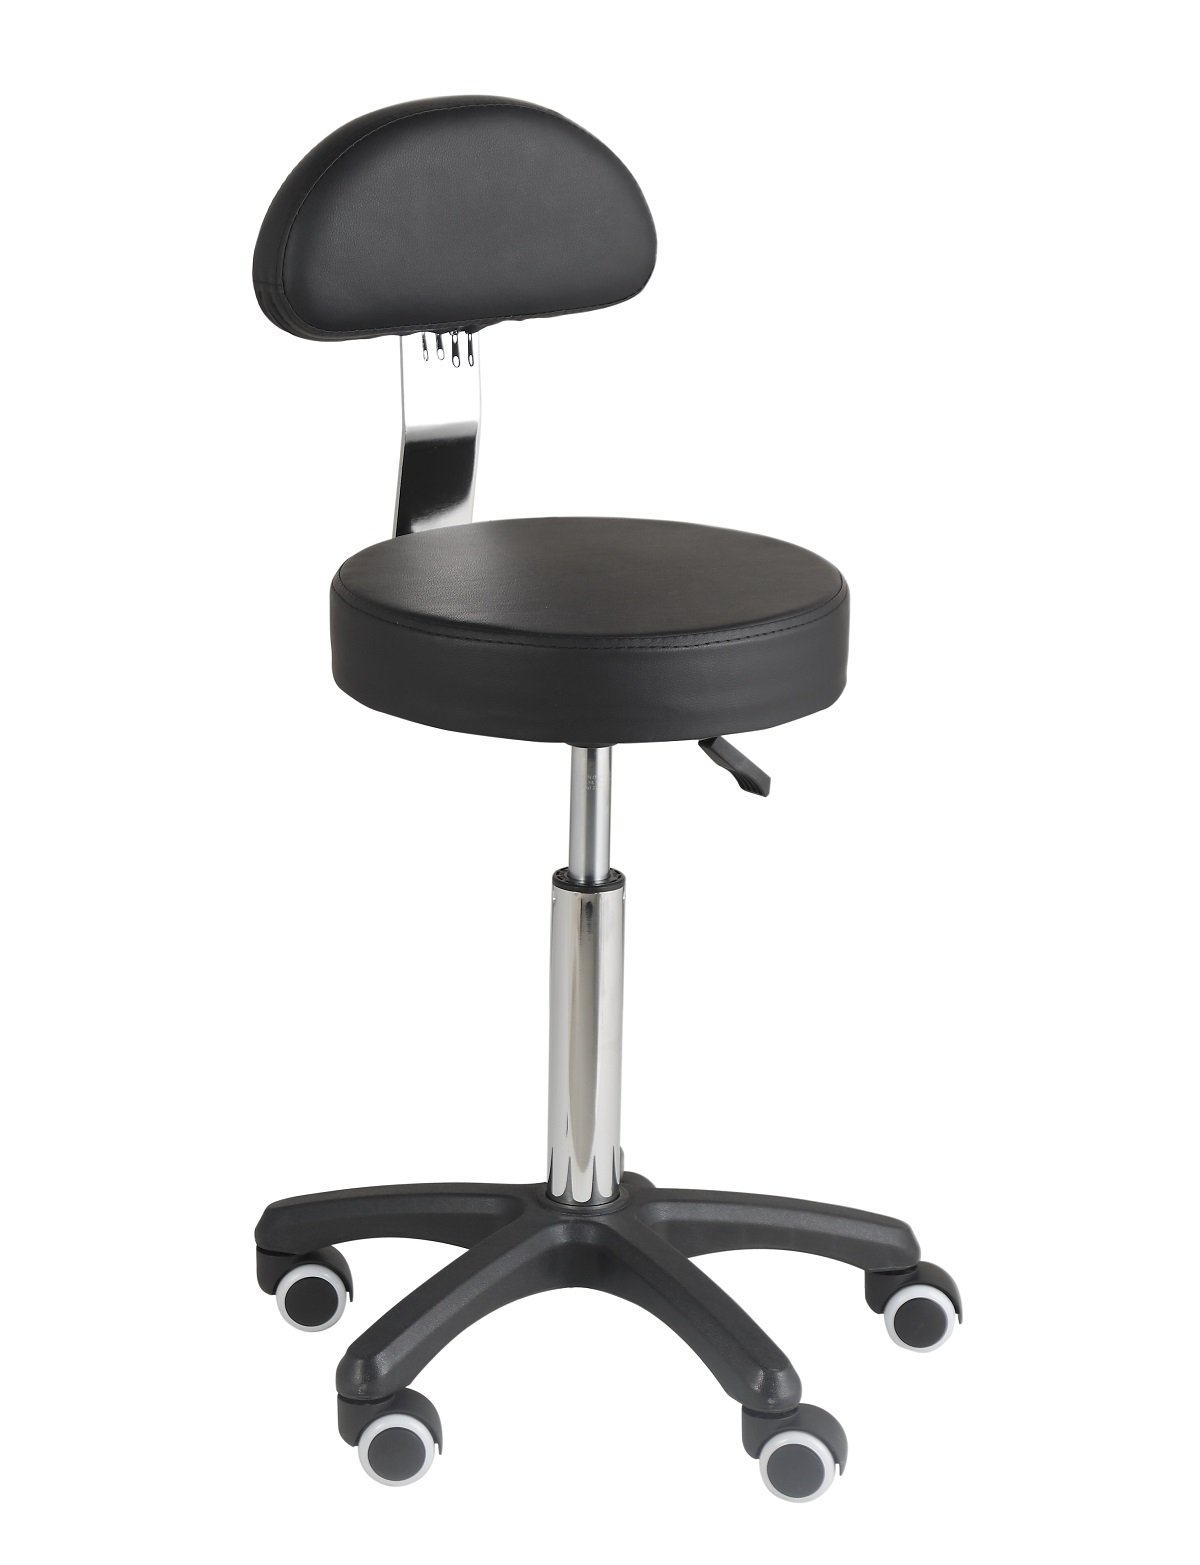 Studio Stool Chair Adjustable Swivel Rolling for Home Office Work-Benches Lab Hospital Kitchen Stool with Back Support Larger Cushioned Seat